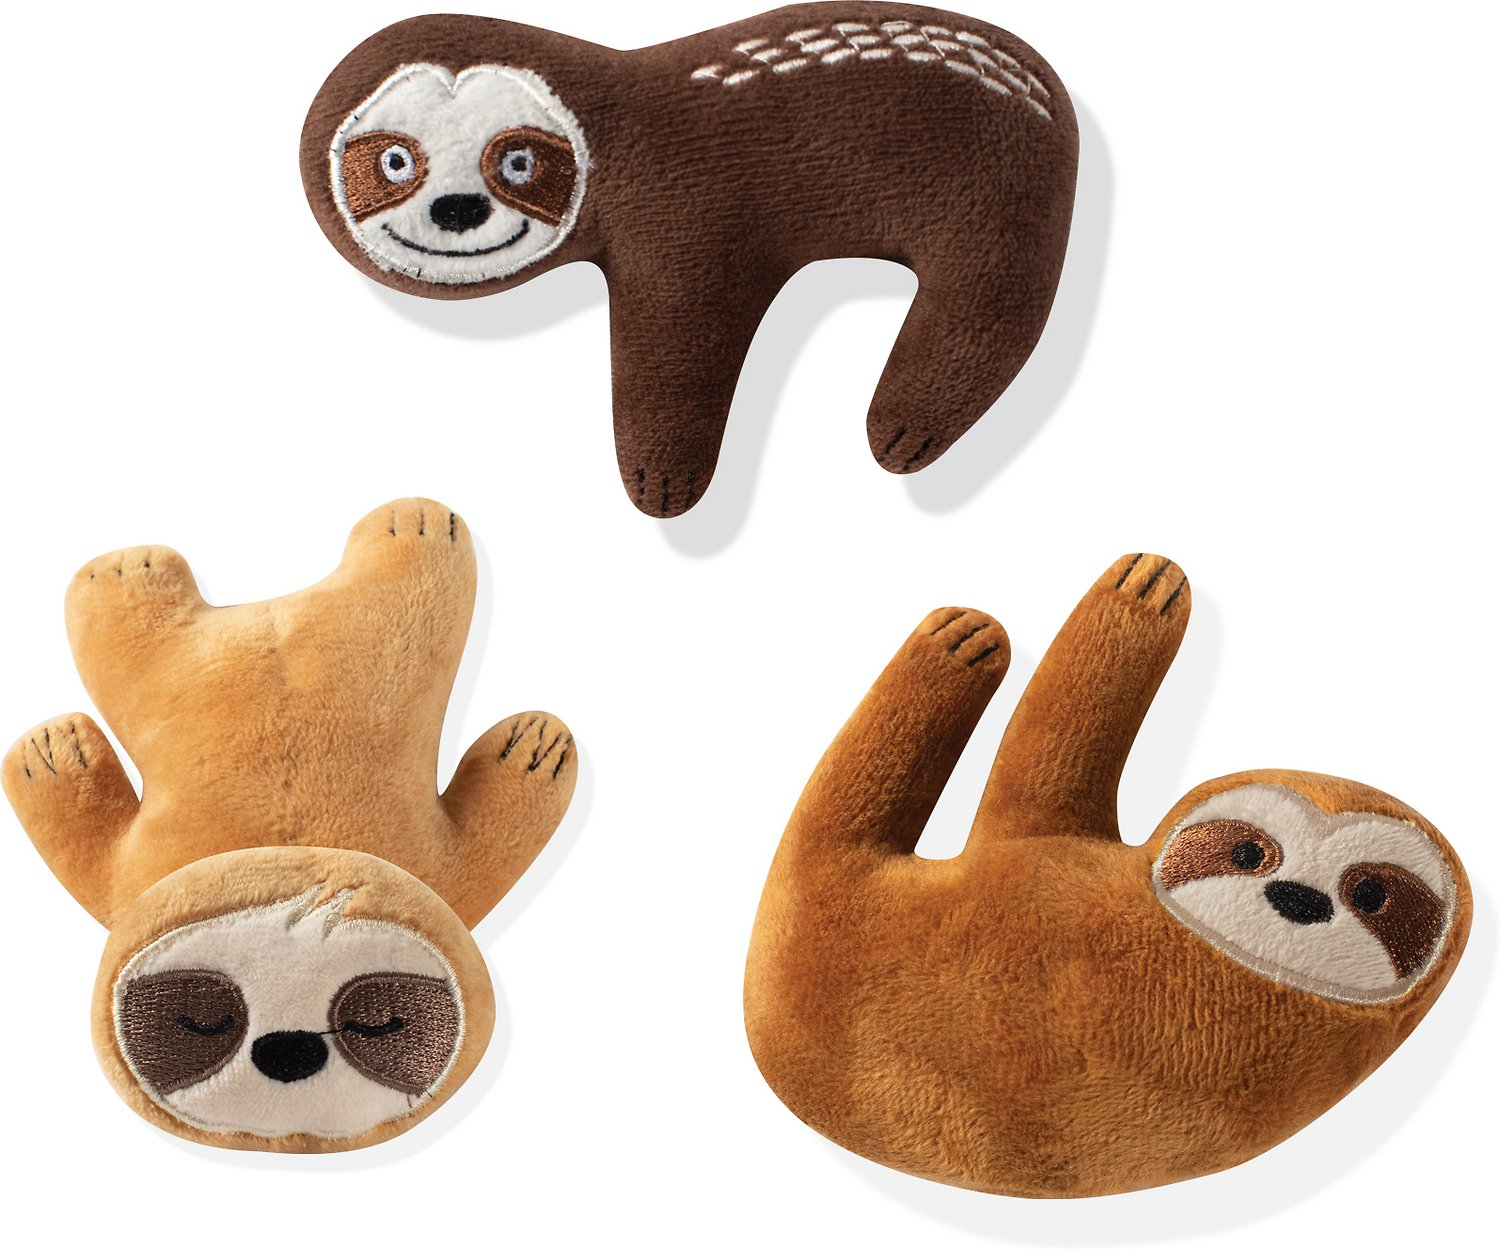 Pet Shop by Fringe Studio Hangin with the Homies Sloth Mini Dog Toys, 3-count